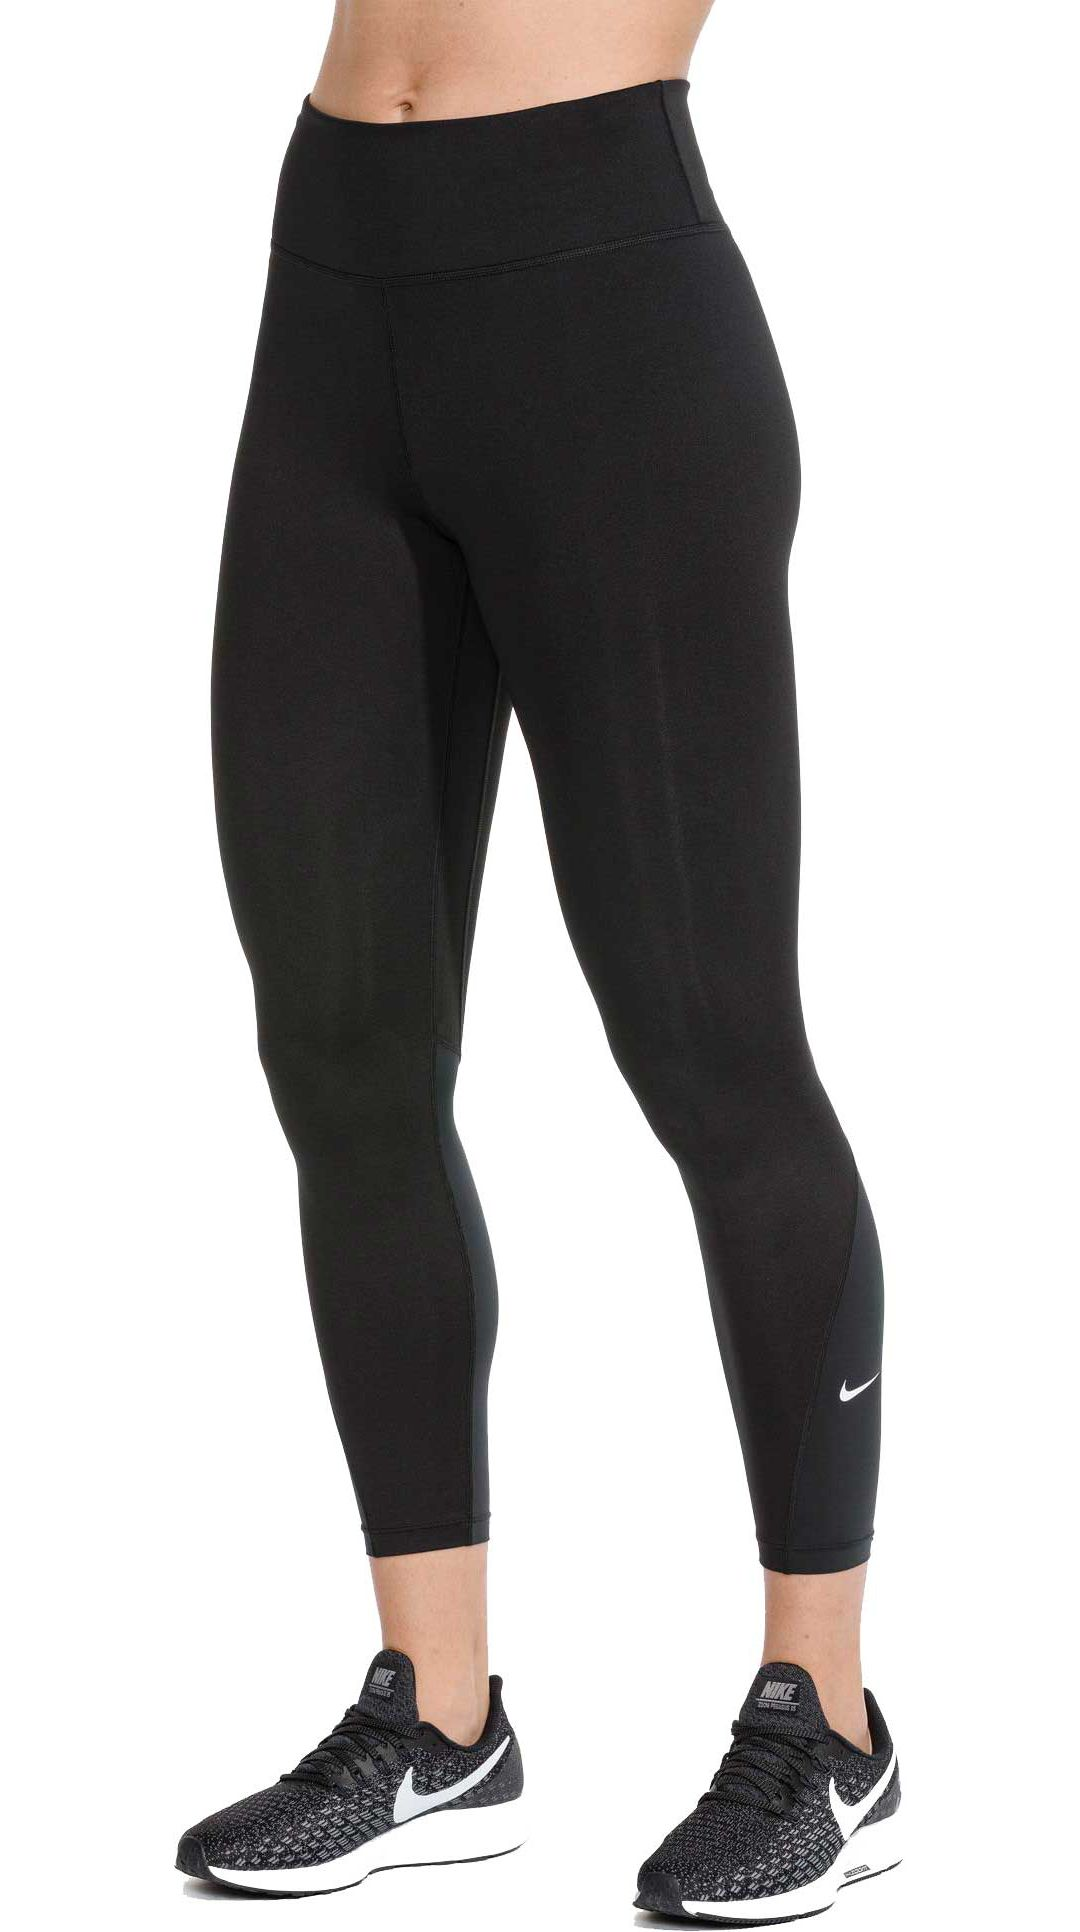 6db9bfa33fe37 Nike One Women's 7/8 Tights | DICK'S Sporting Goods